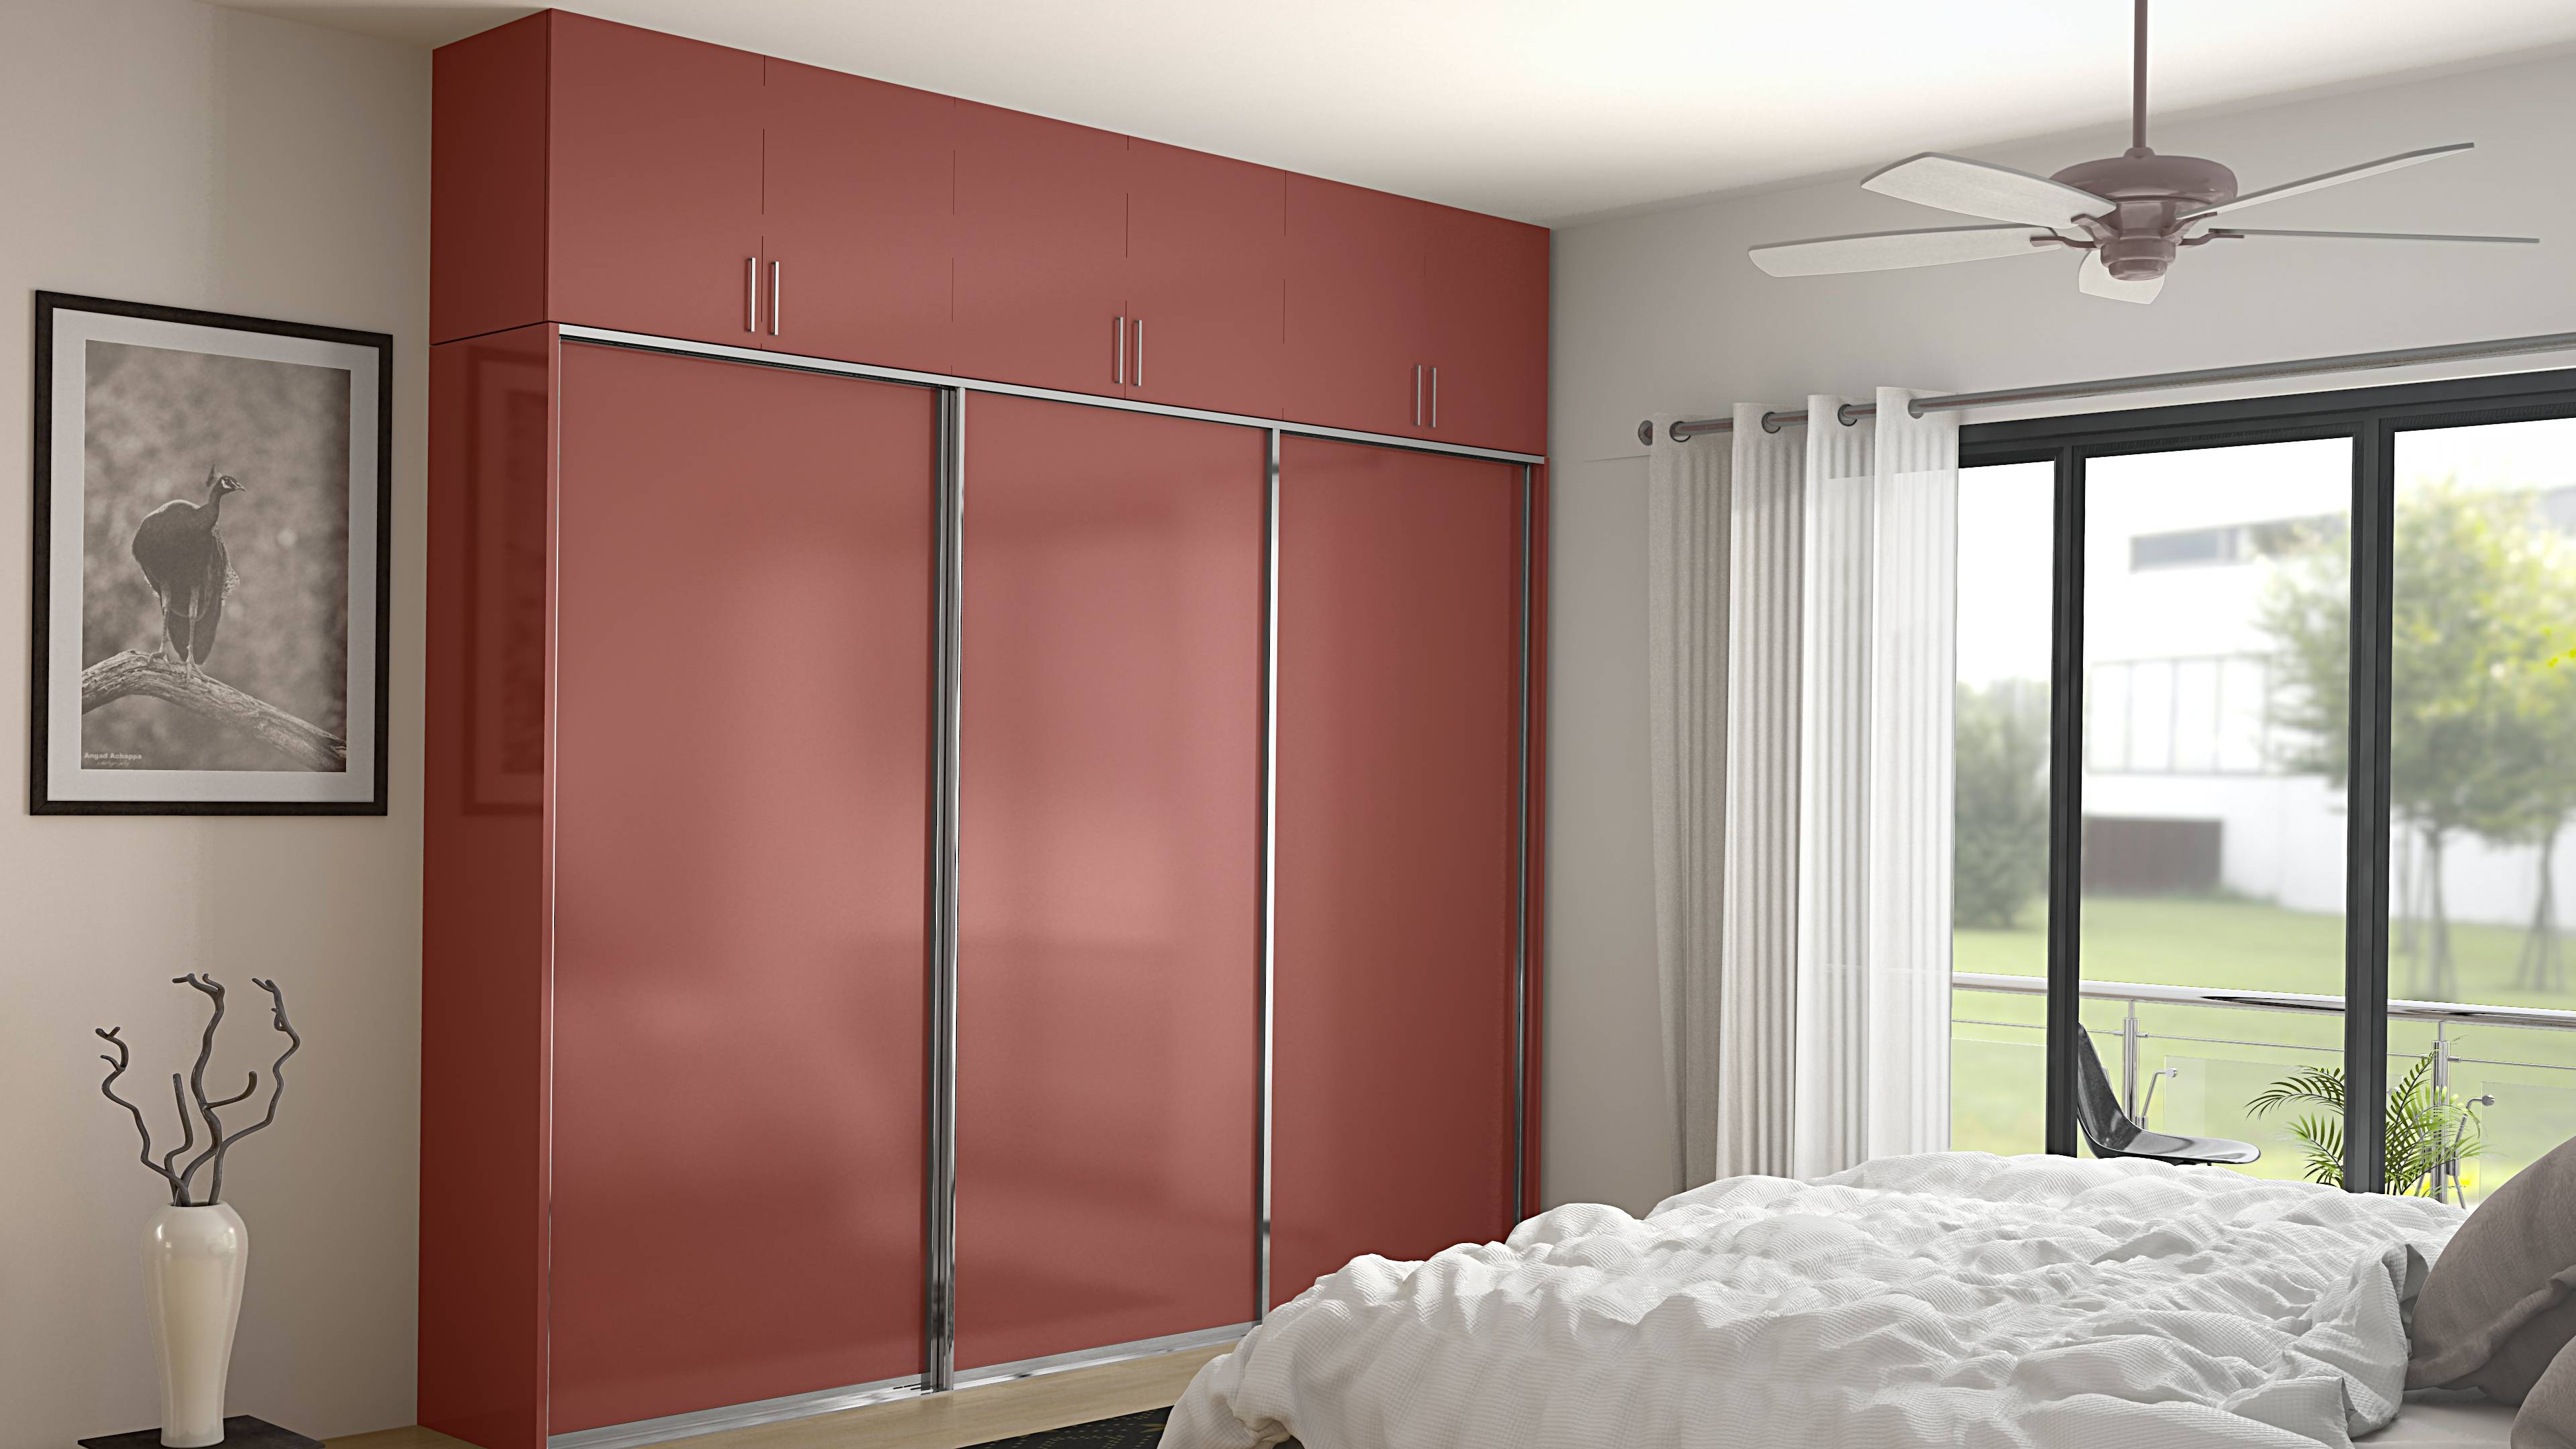 6 Trendy Wardrobe Door Designs From Homelane   Homelane In Coloured Wardrobes (Photo 4 of 15)